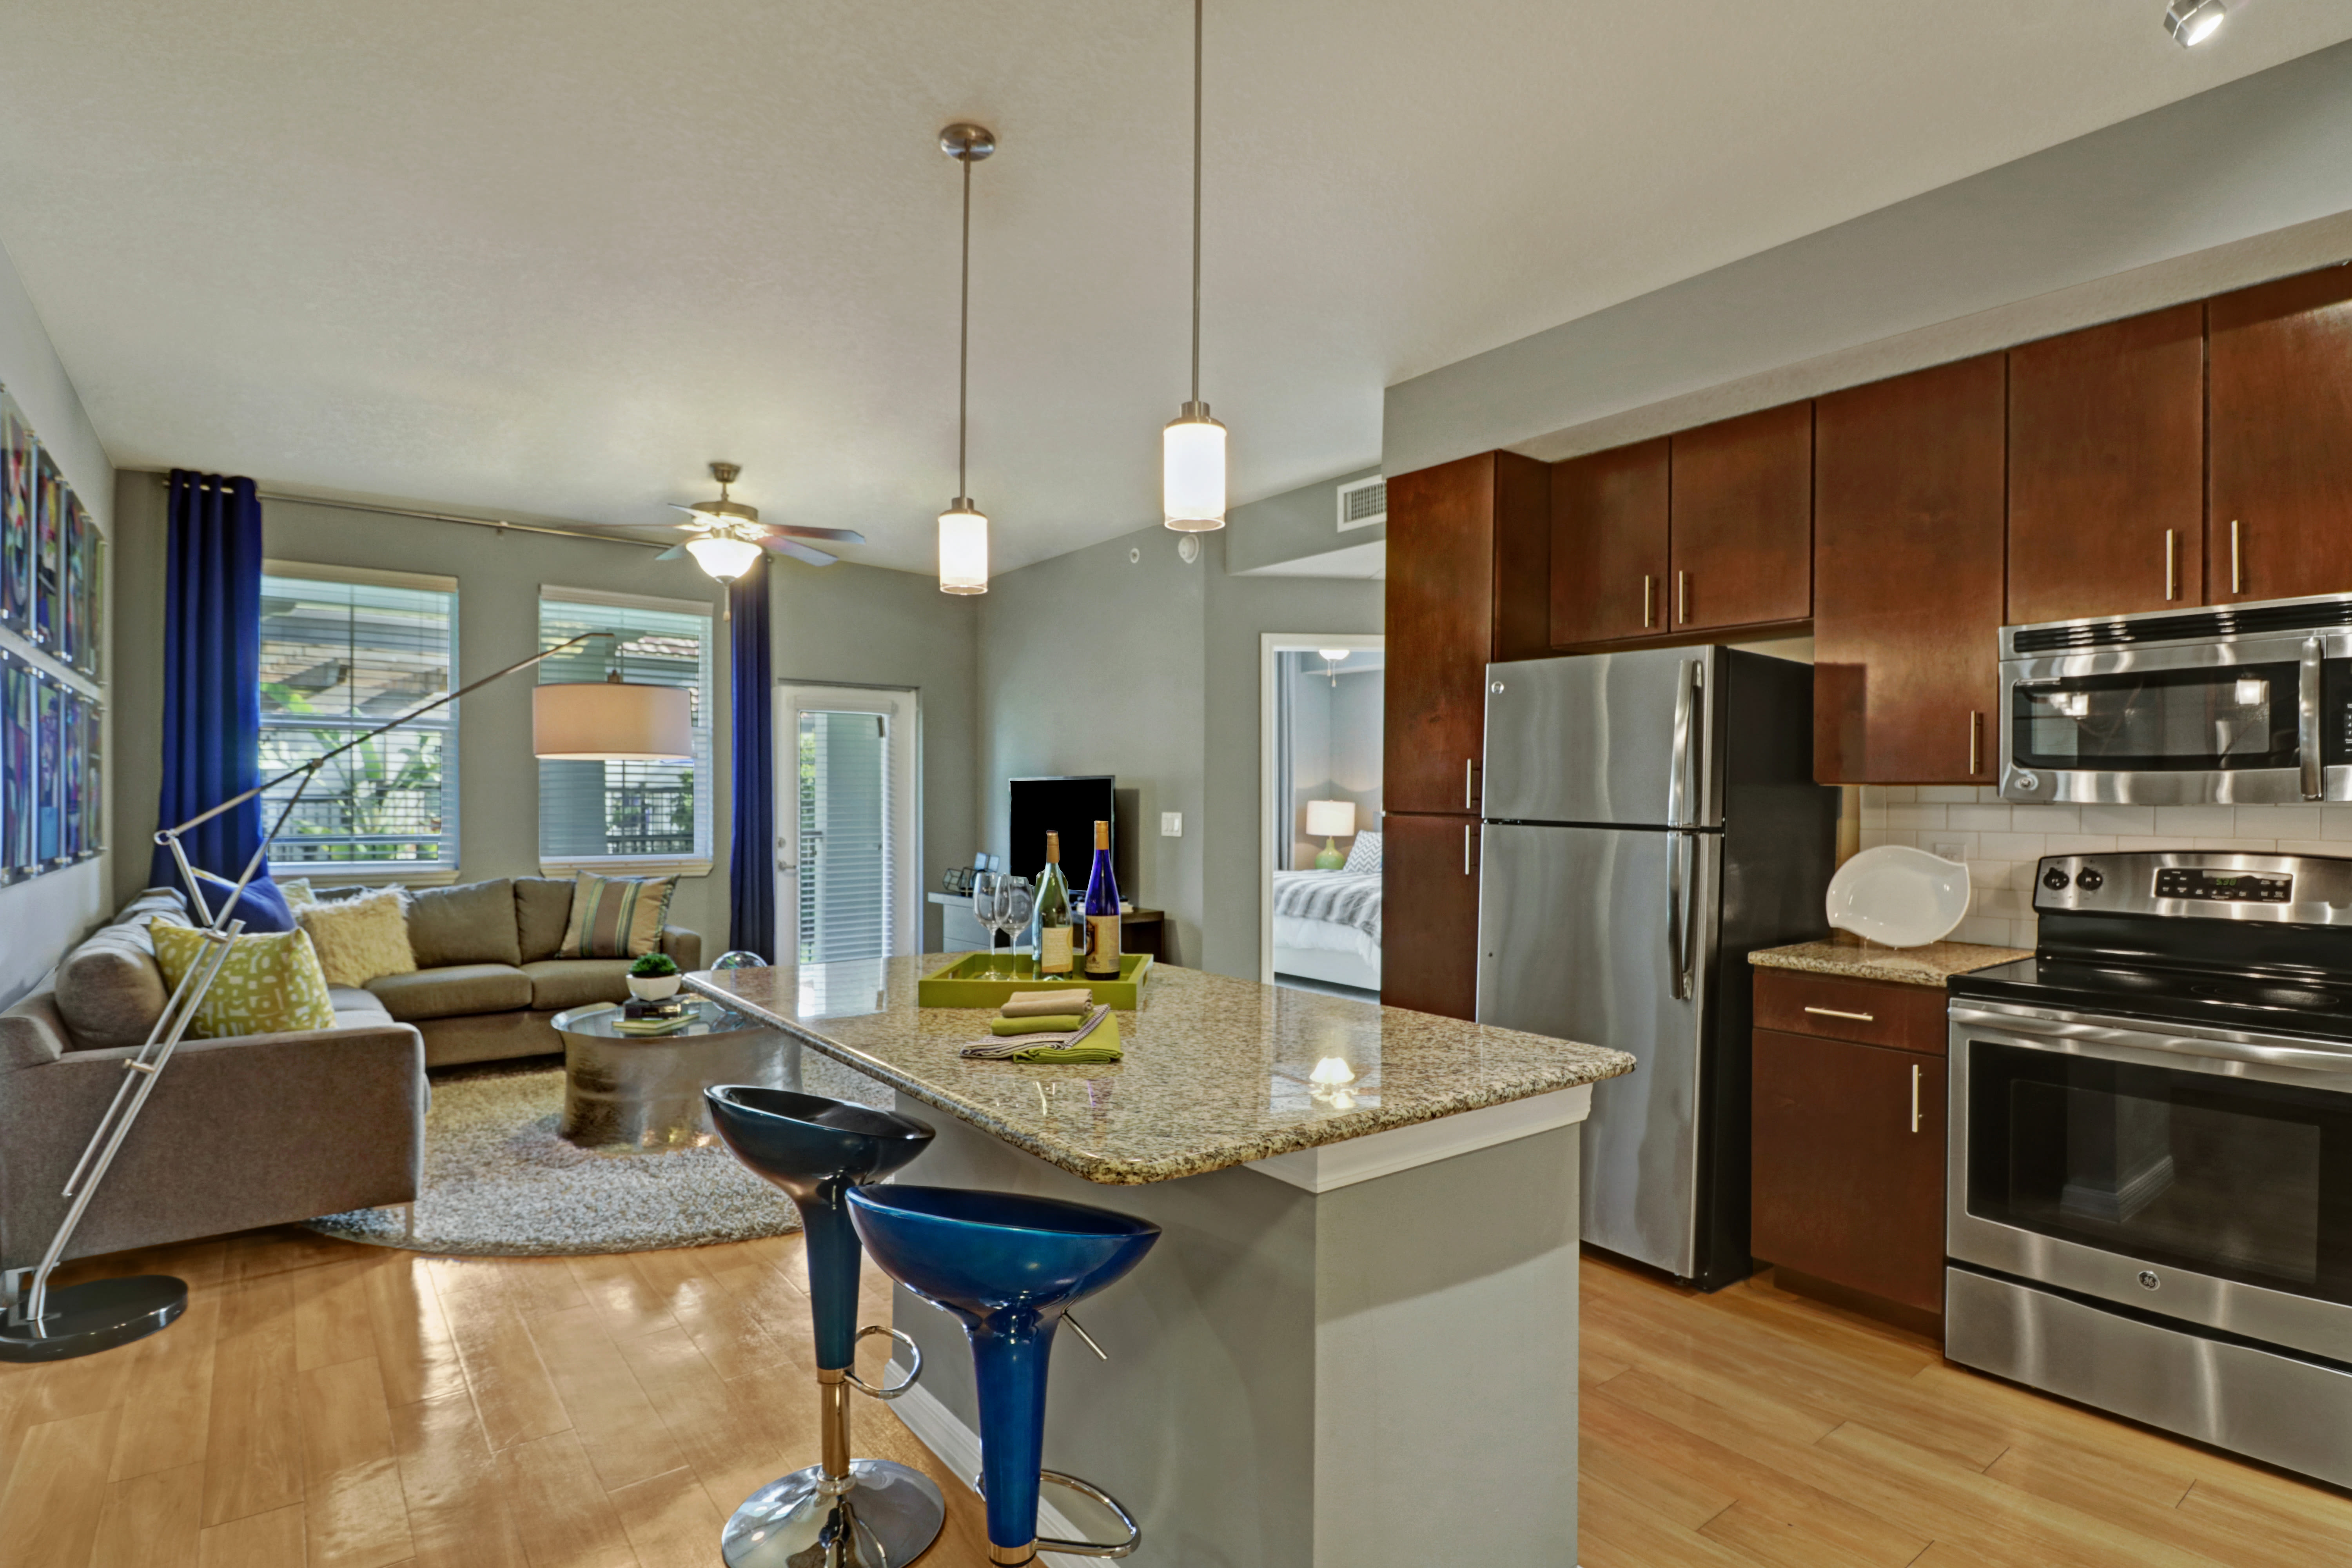 View of kitchen and living room in an apartment at Linden Pointe in Pompano Beach, Florida